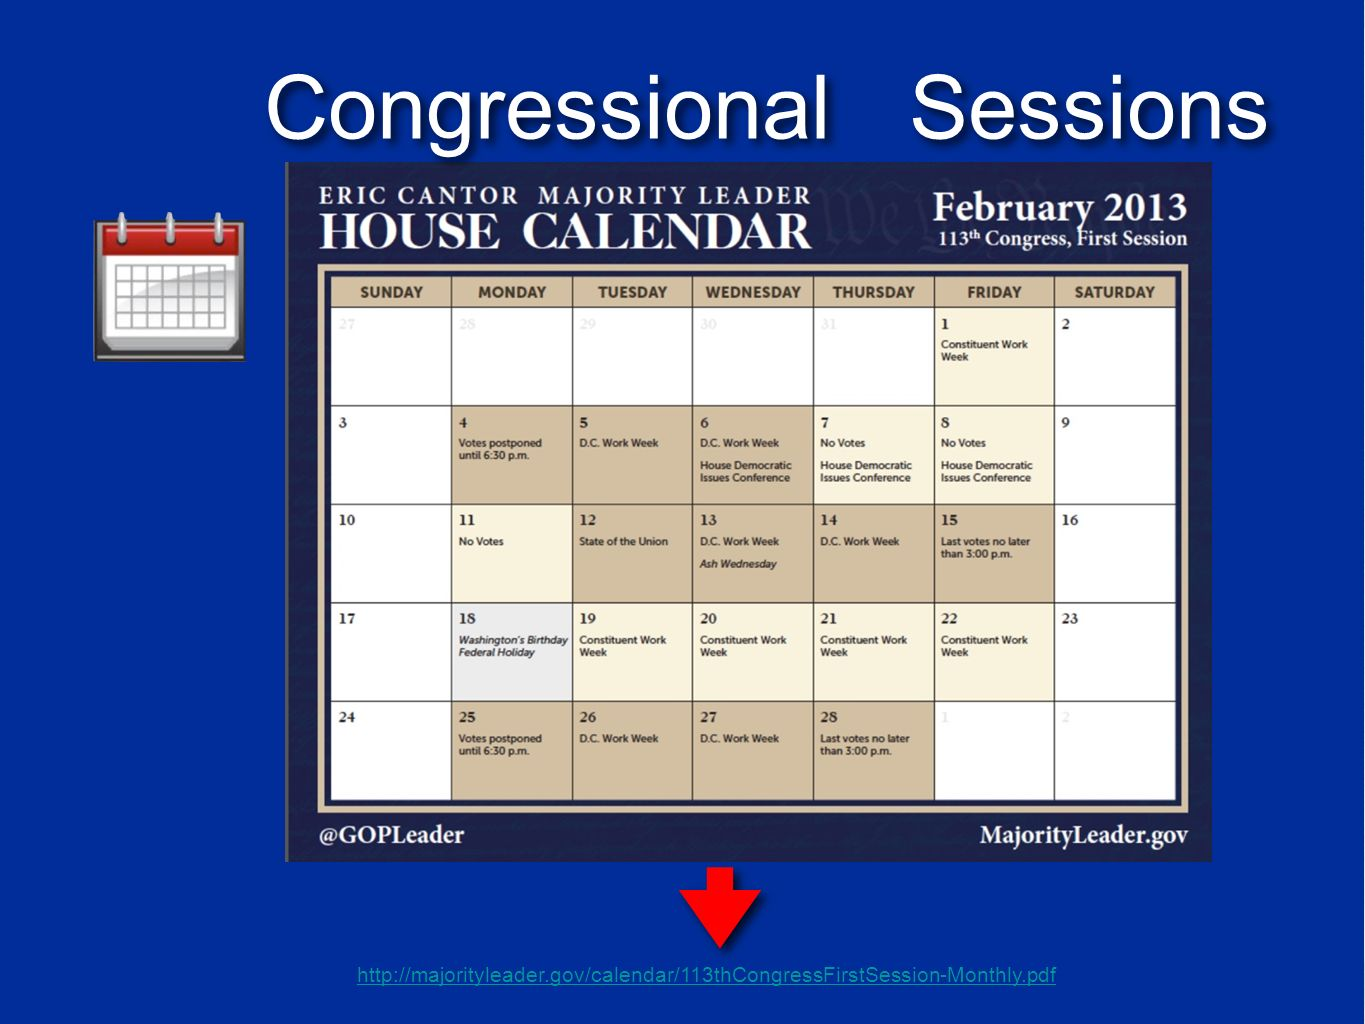 http://majorityleader.gov/calendar/113thCongressFirstSession-Monthly.pdf Congressional Sessions